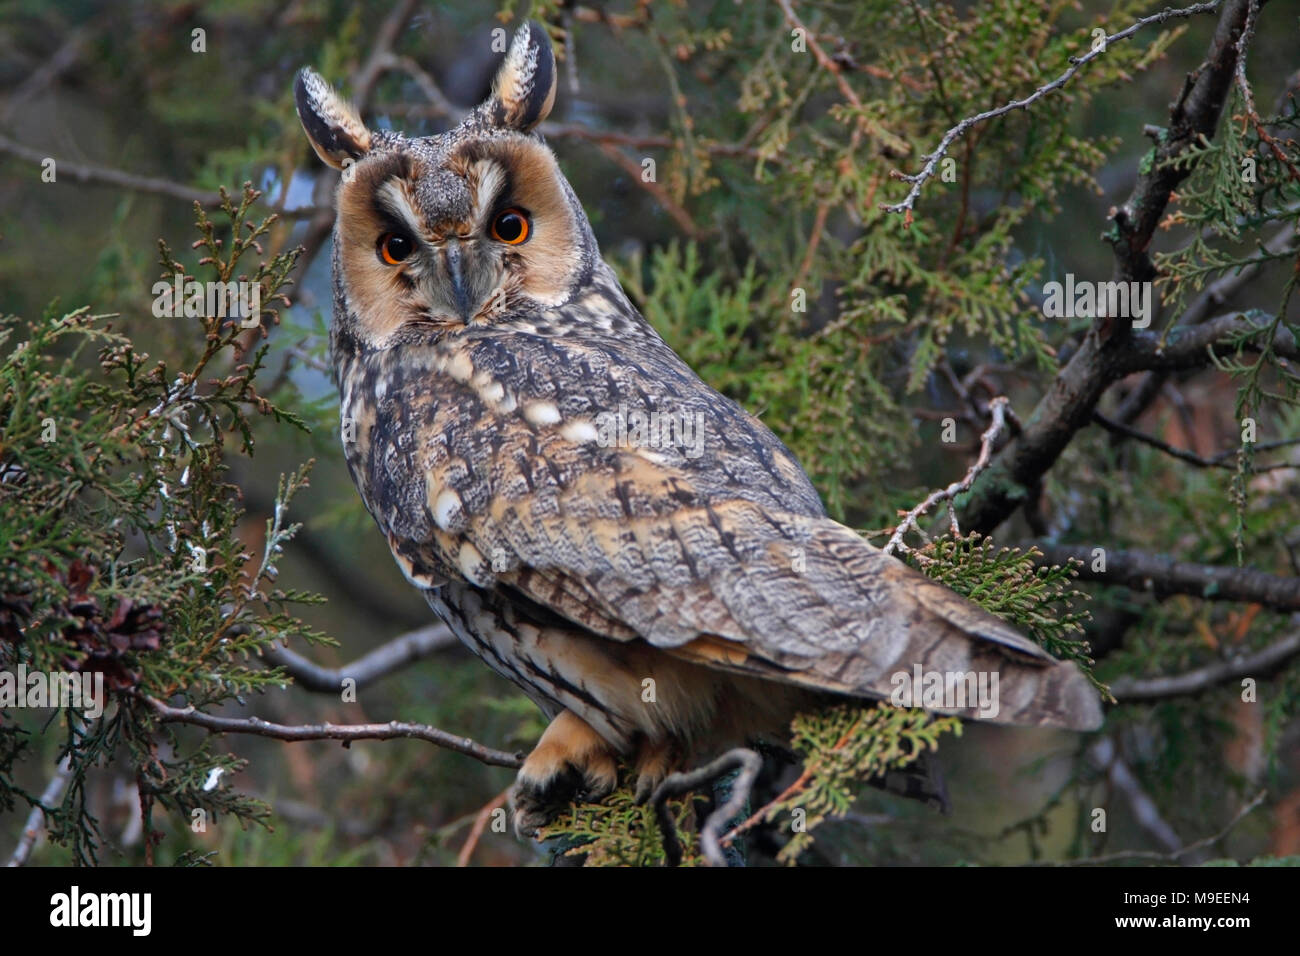 LONG-EARED OWL (Asio otus) - Stock Image